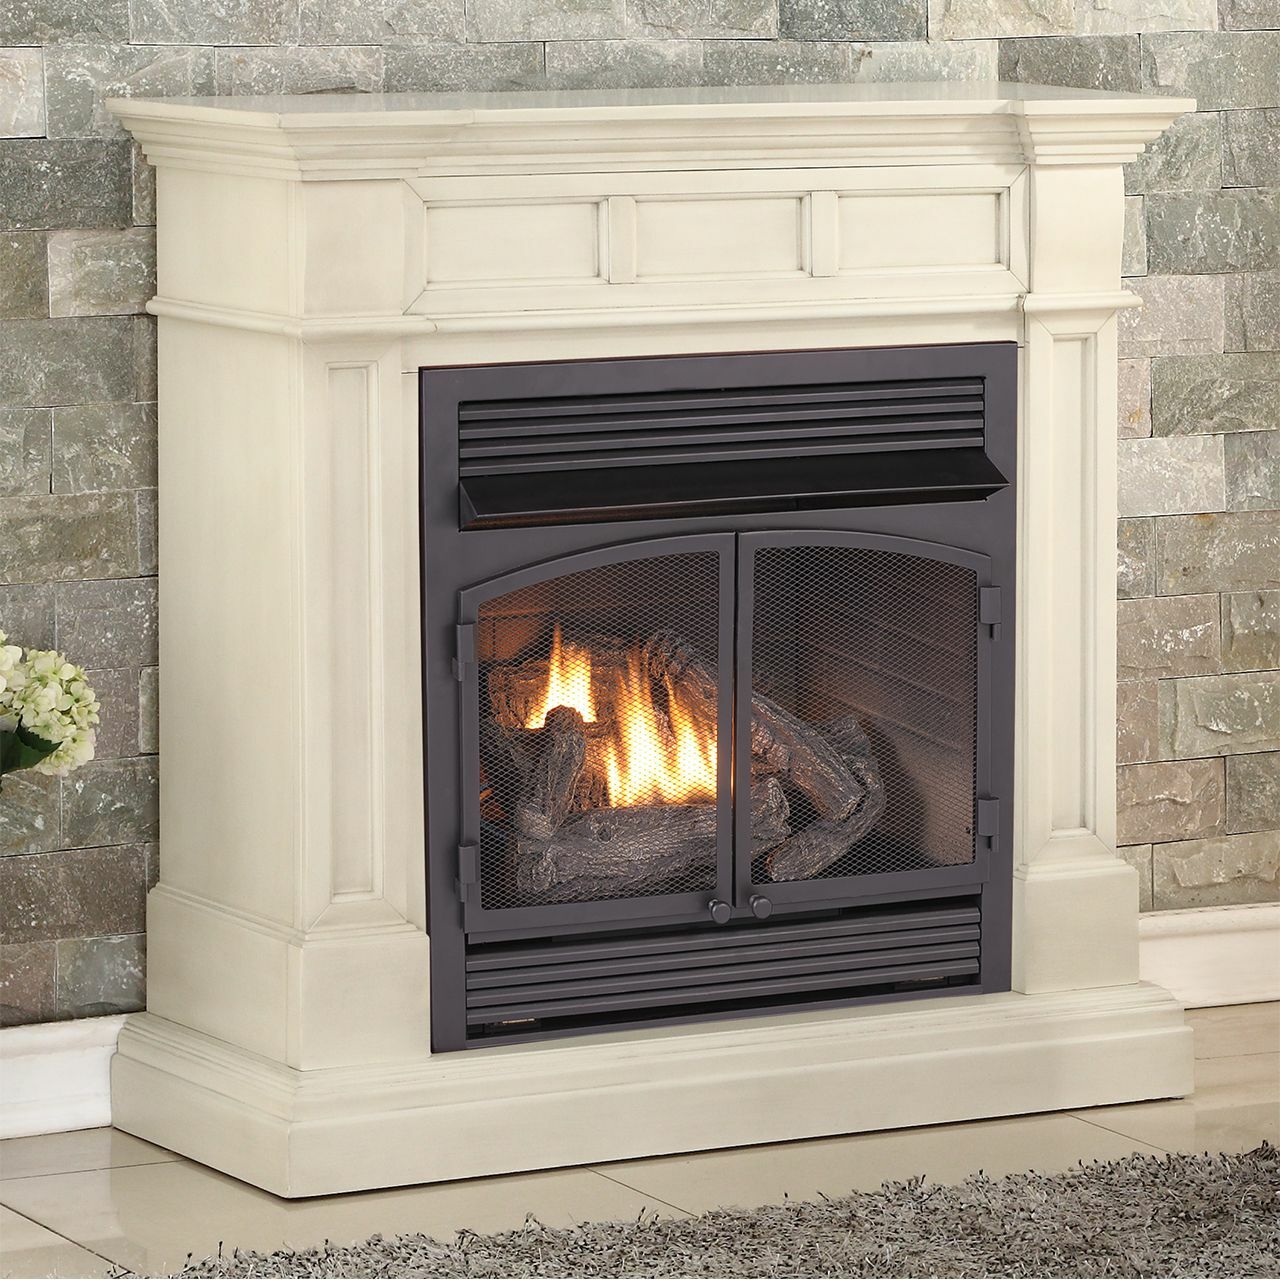 Duluth Forge Dual Fuel Ventless Fireplace 32 000 Btu Remote